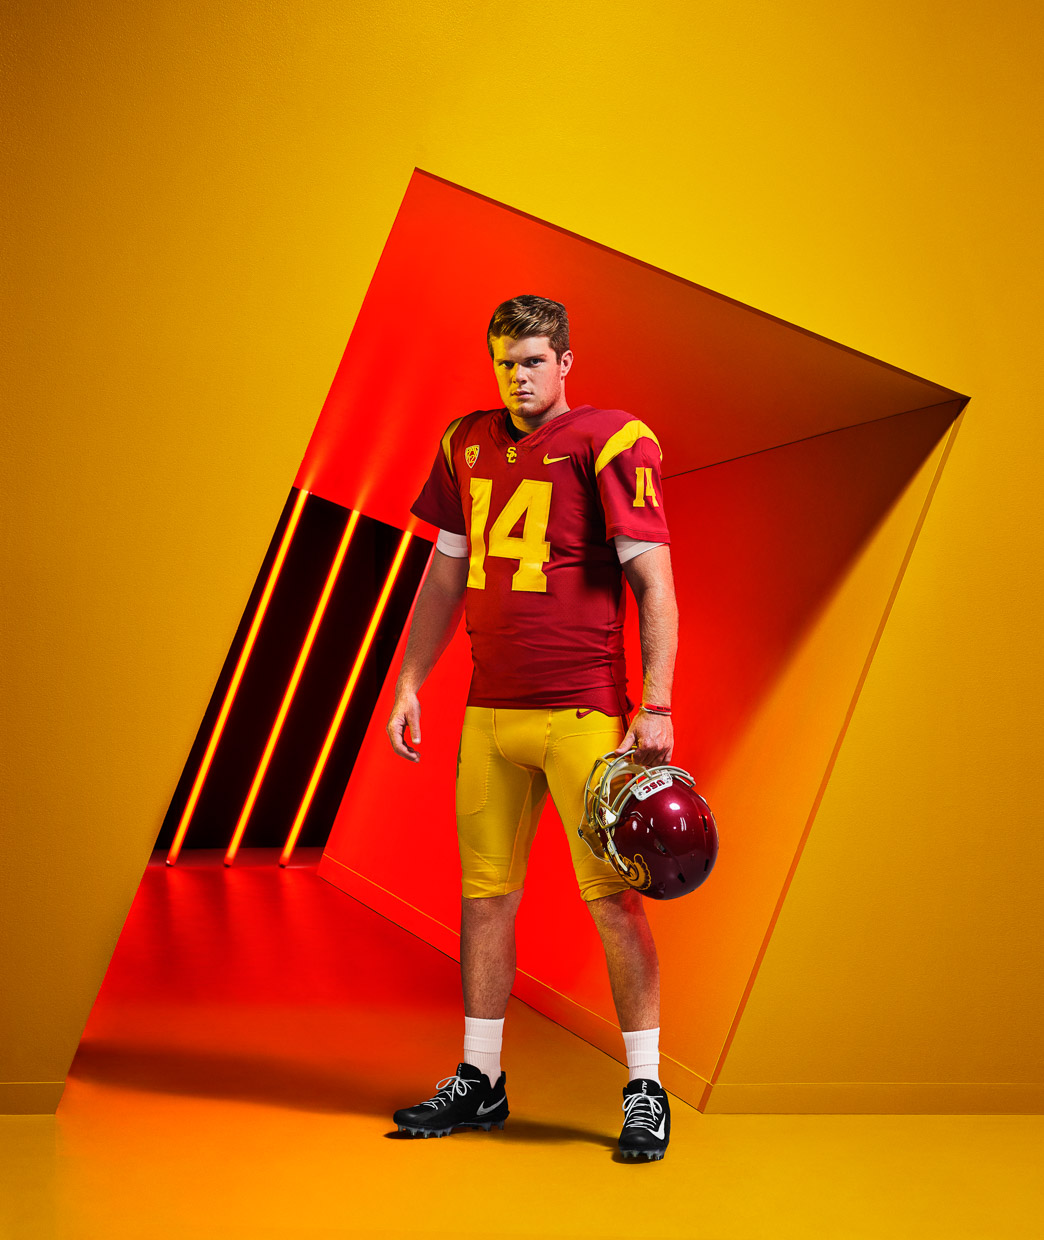 Sam Darnold. ESPN The Magazine.